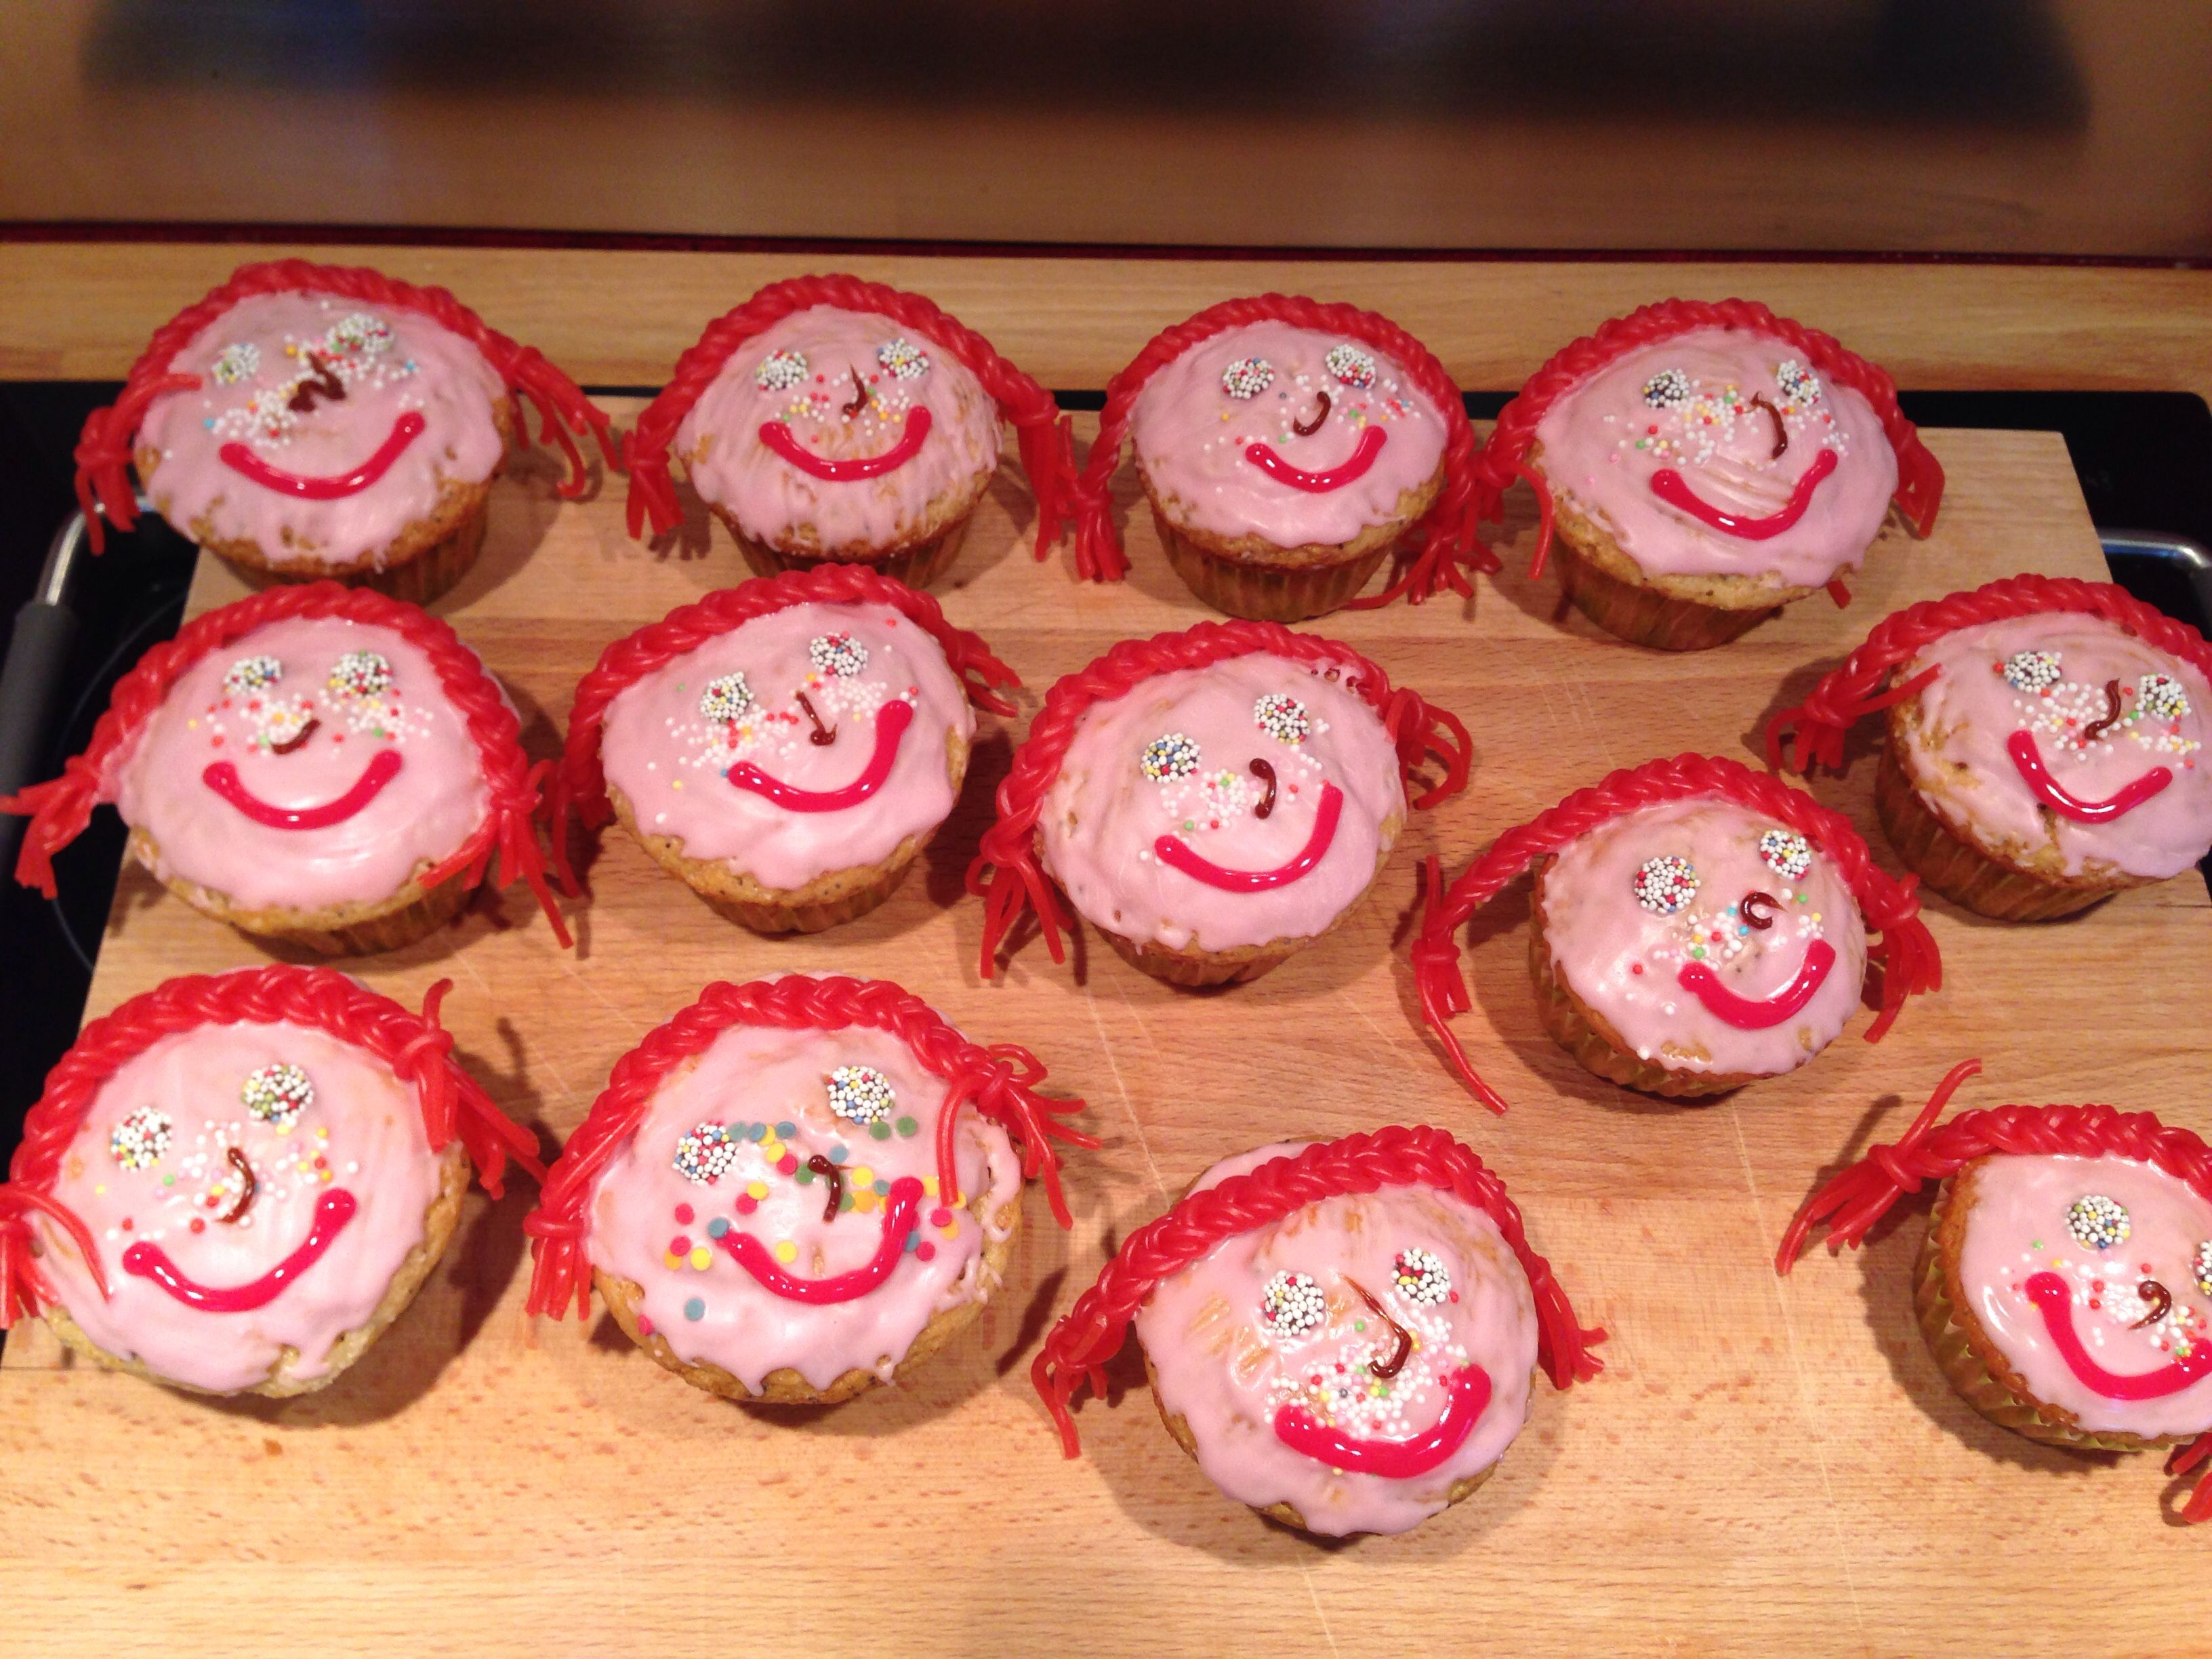 Pippi Langstrumpf Muffins Pipi Long Stocking Cup Cakes